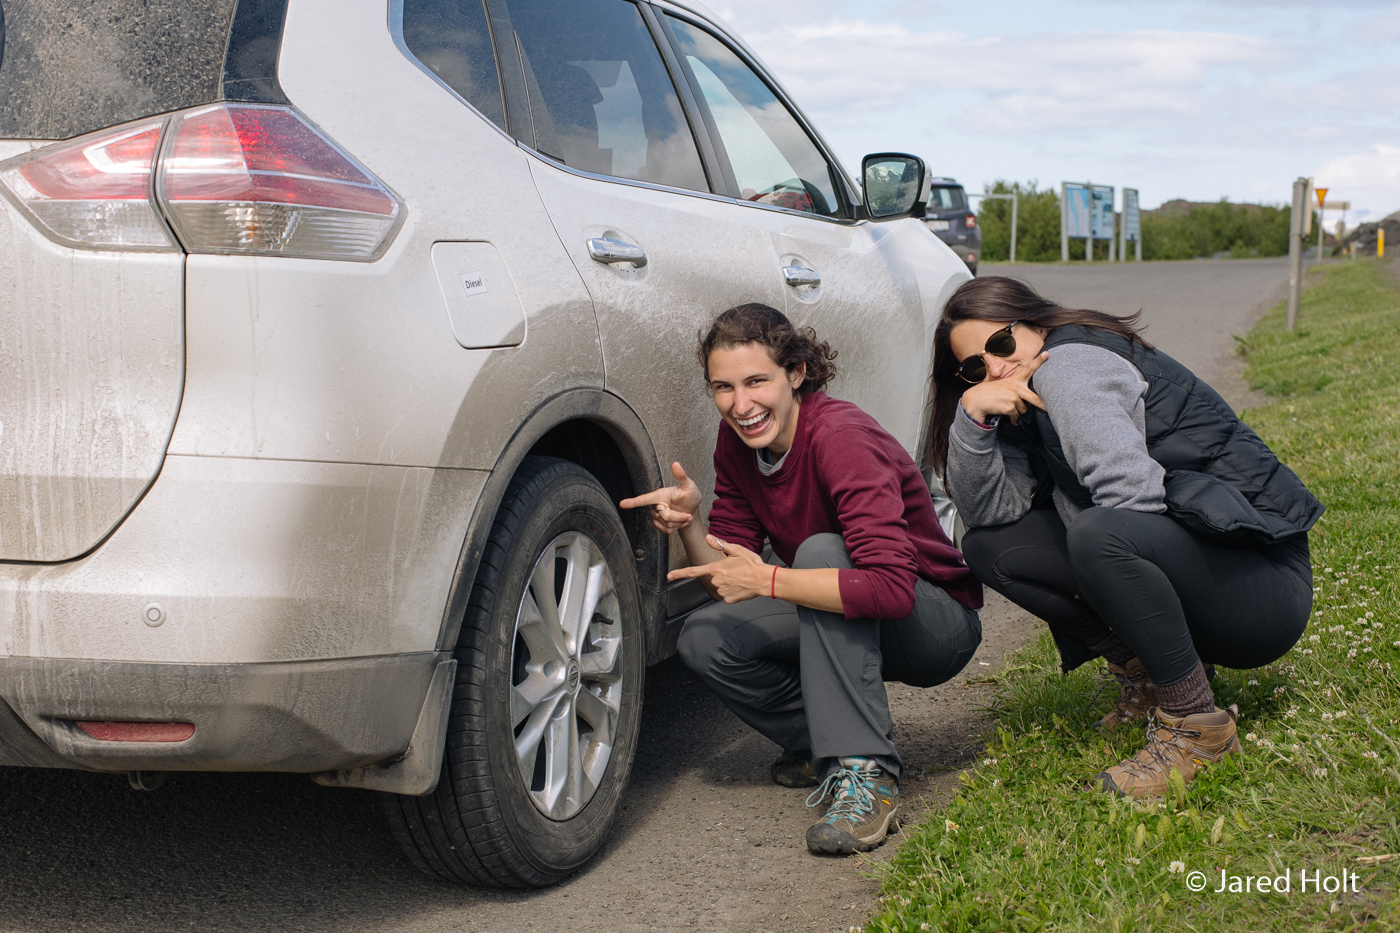 We broke this tire and had to get it fixed (don't tell our rental car company).